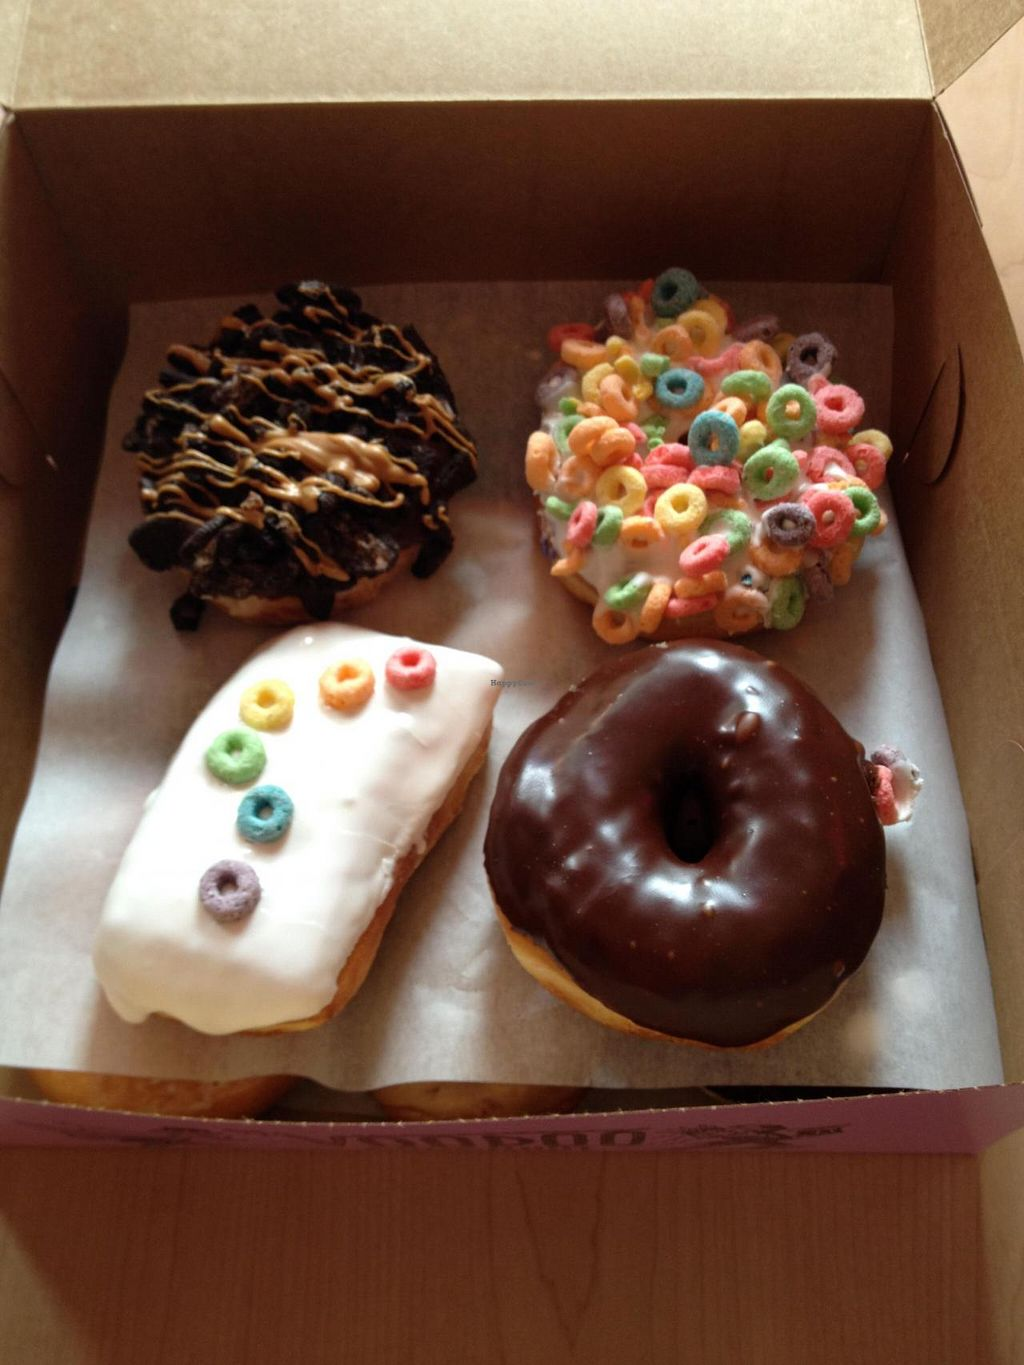 """Photo of Voodoo Doughnut Too  by <a href=""""/members/profile/Posi%20Britt"""">Posi Britt</a> <br/>So many selections! <br/> June 25, 2014  - <a href='/contact/abuse/image/33115/72788'>Report</a>"""